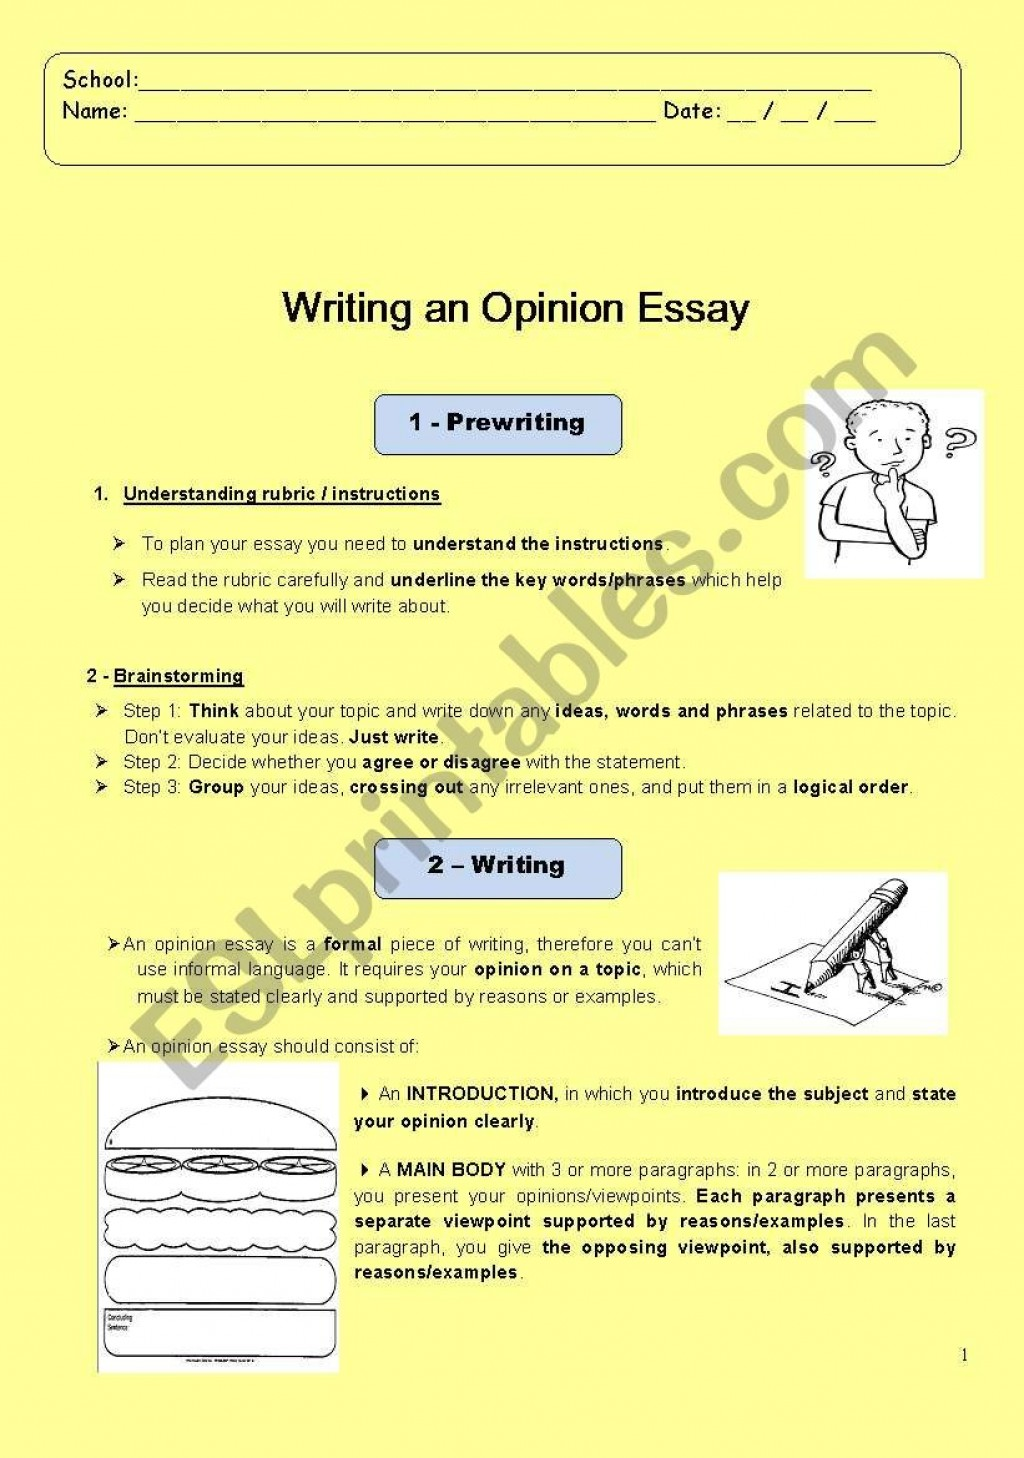 014 How To Write An Opinion Essay 519469 1 Unbelievable 4th Grade On A Book Conclusion Large